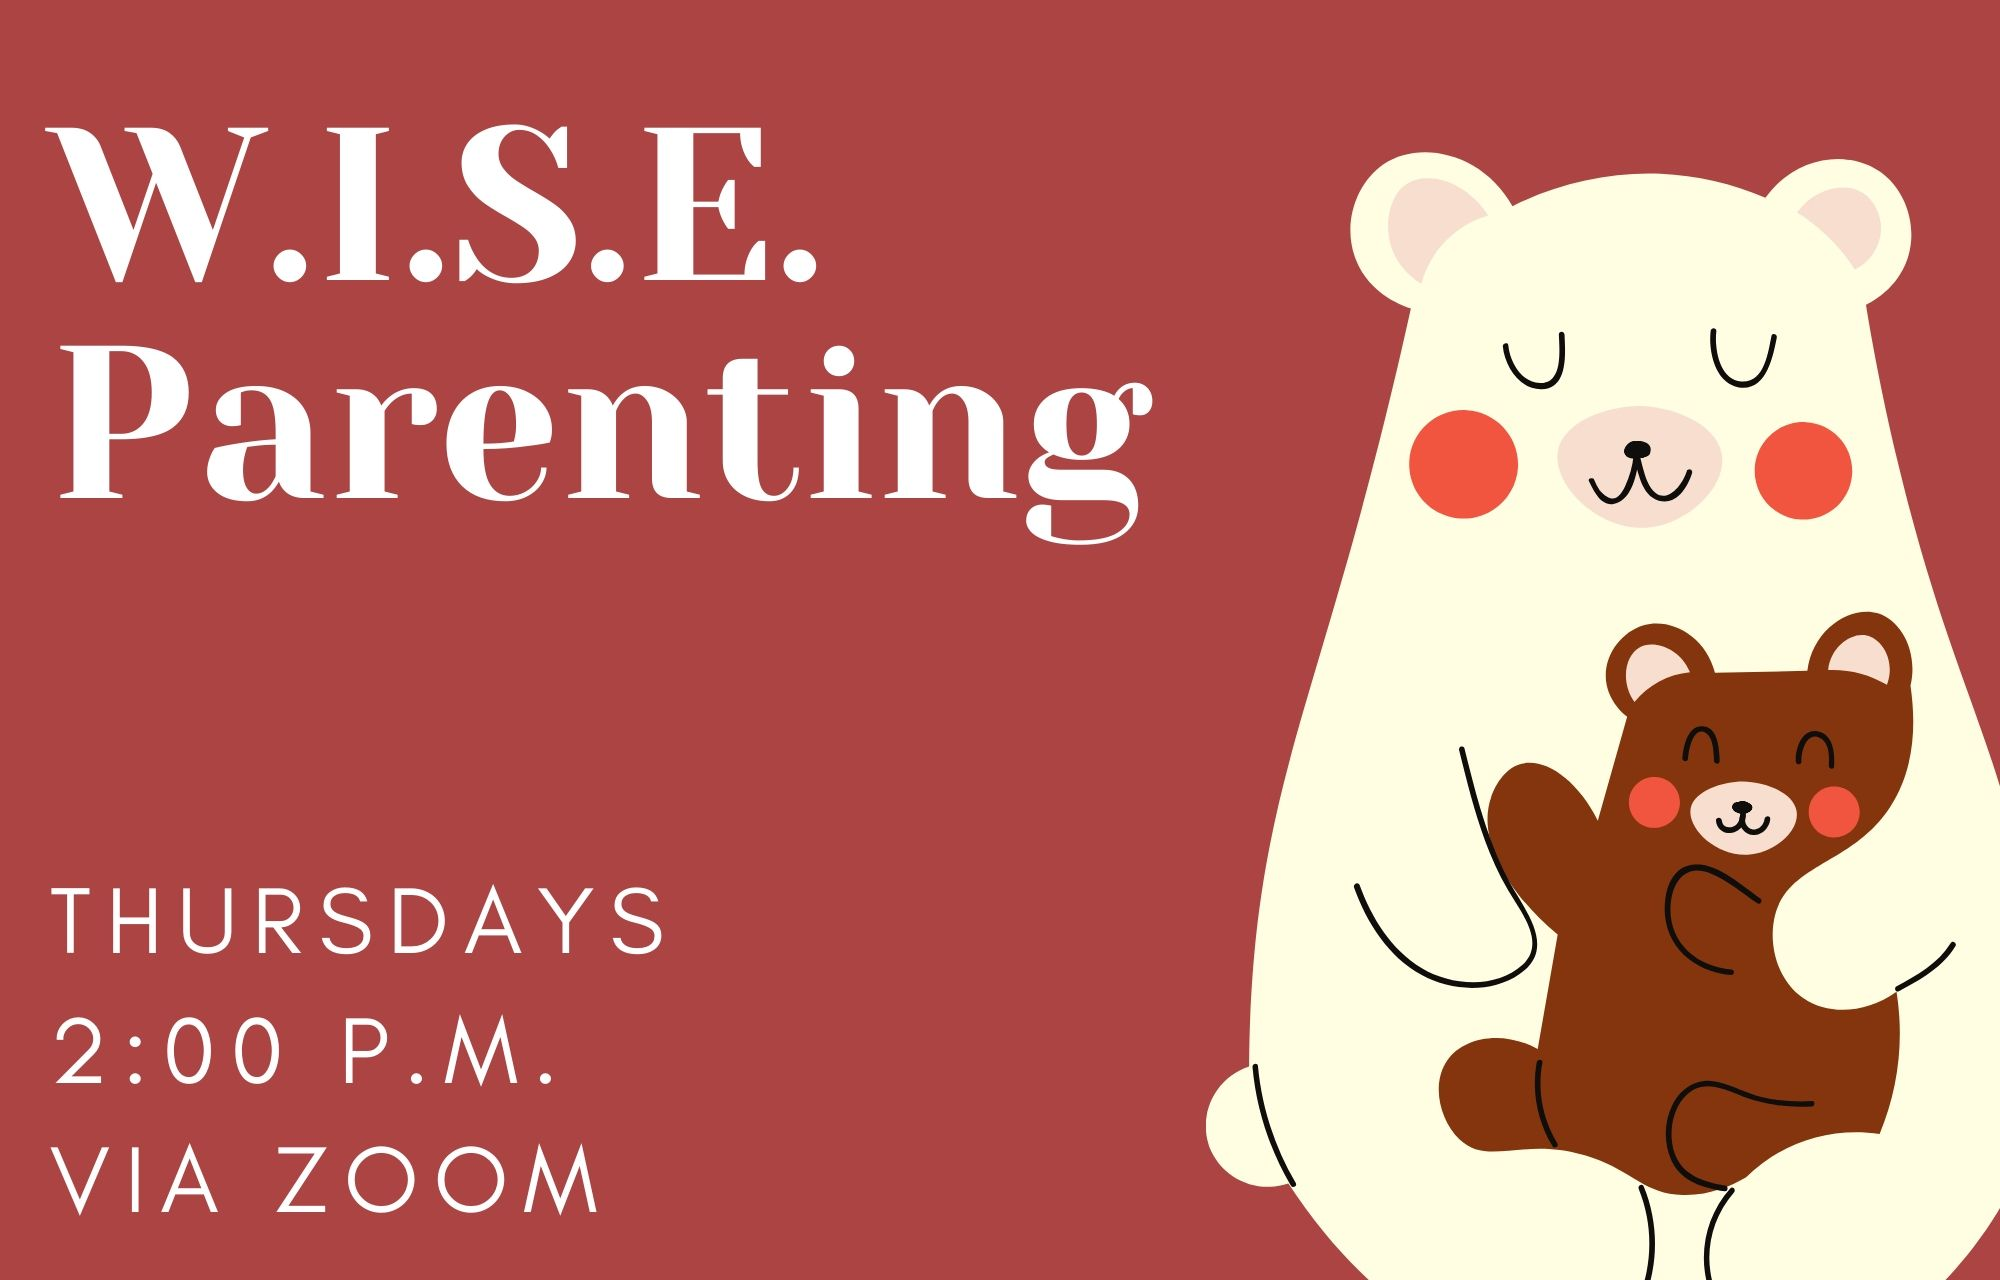 WISE Parenting- Thursdays 2:00 p.m.